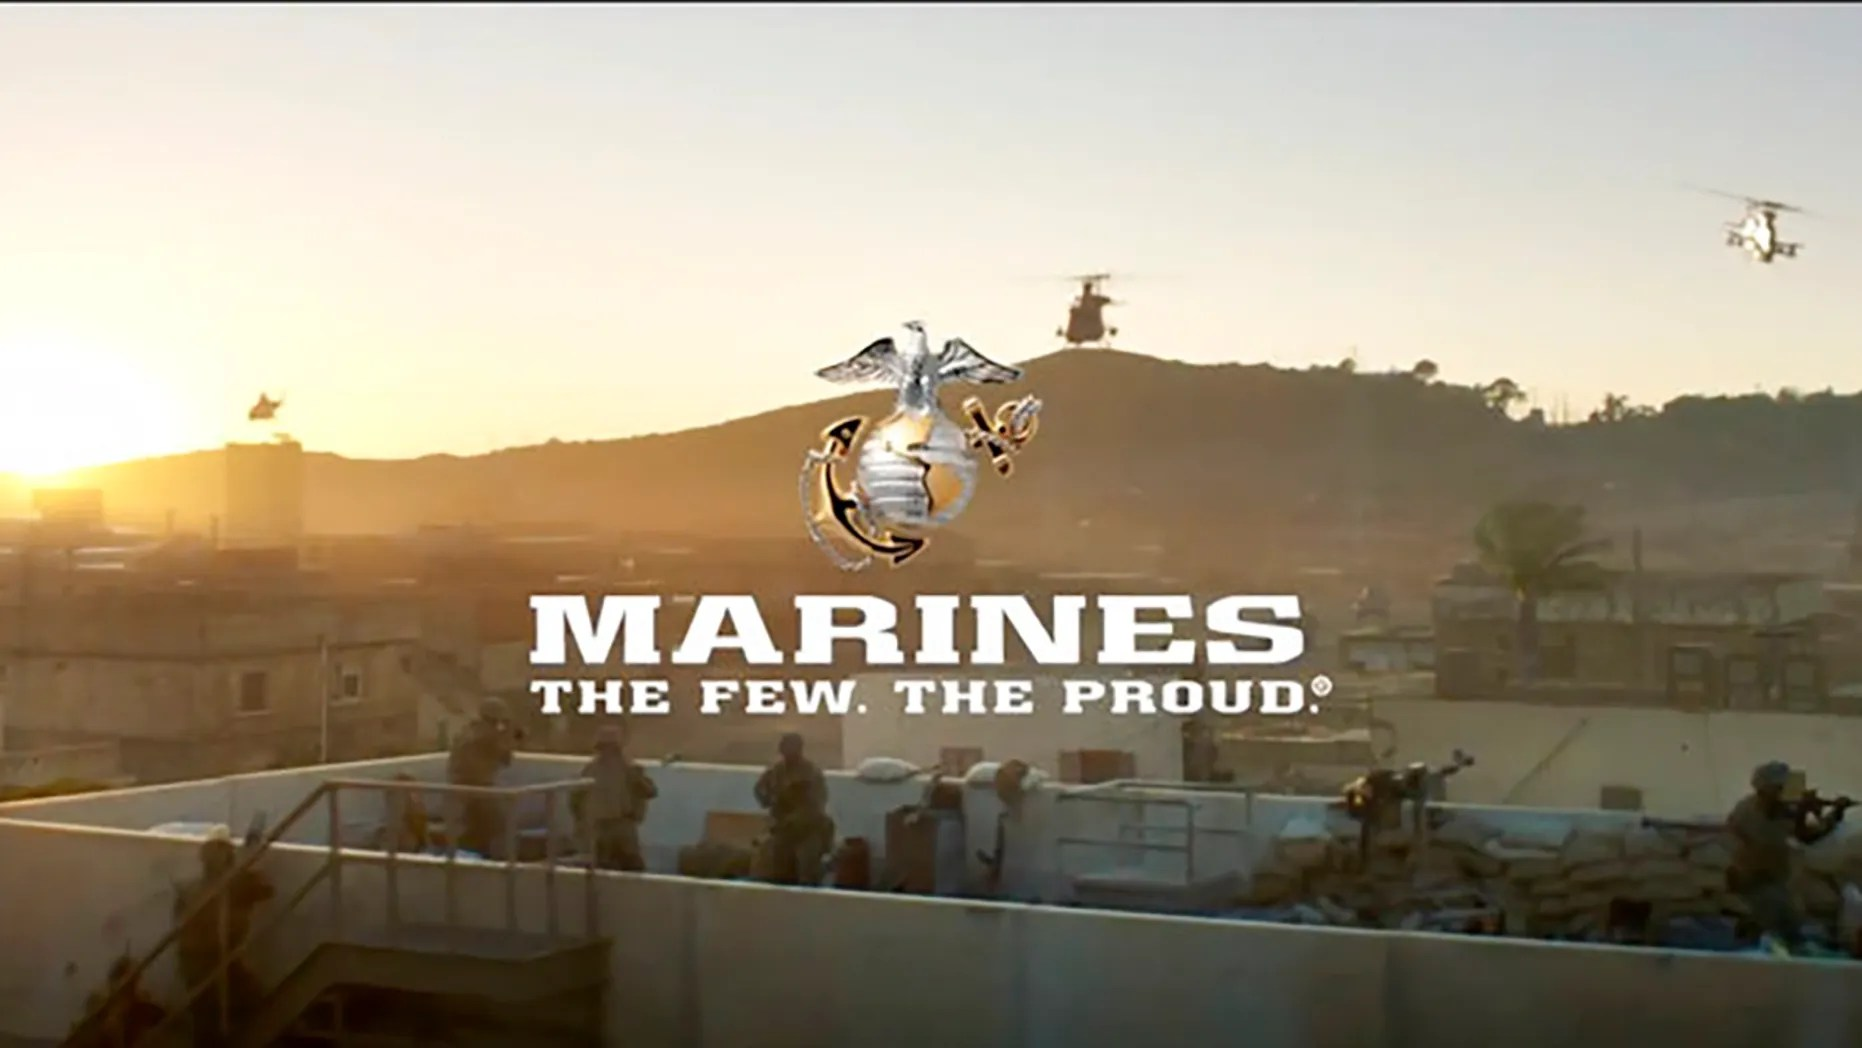 Image from a video released by the U.S. Marine Corps.